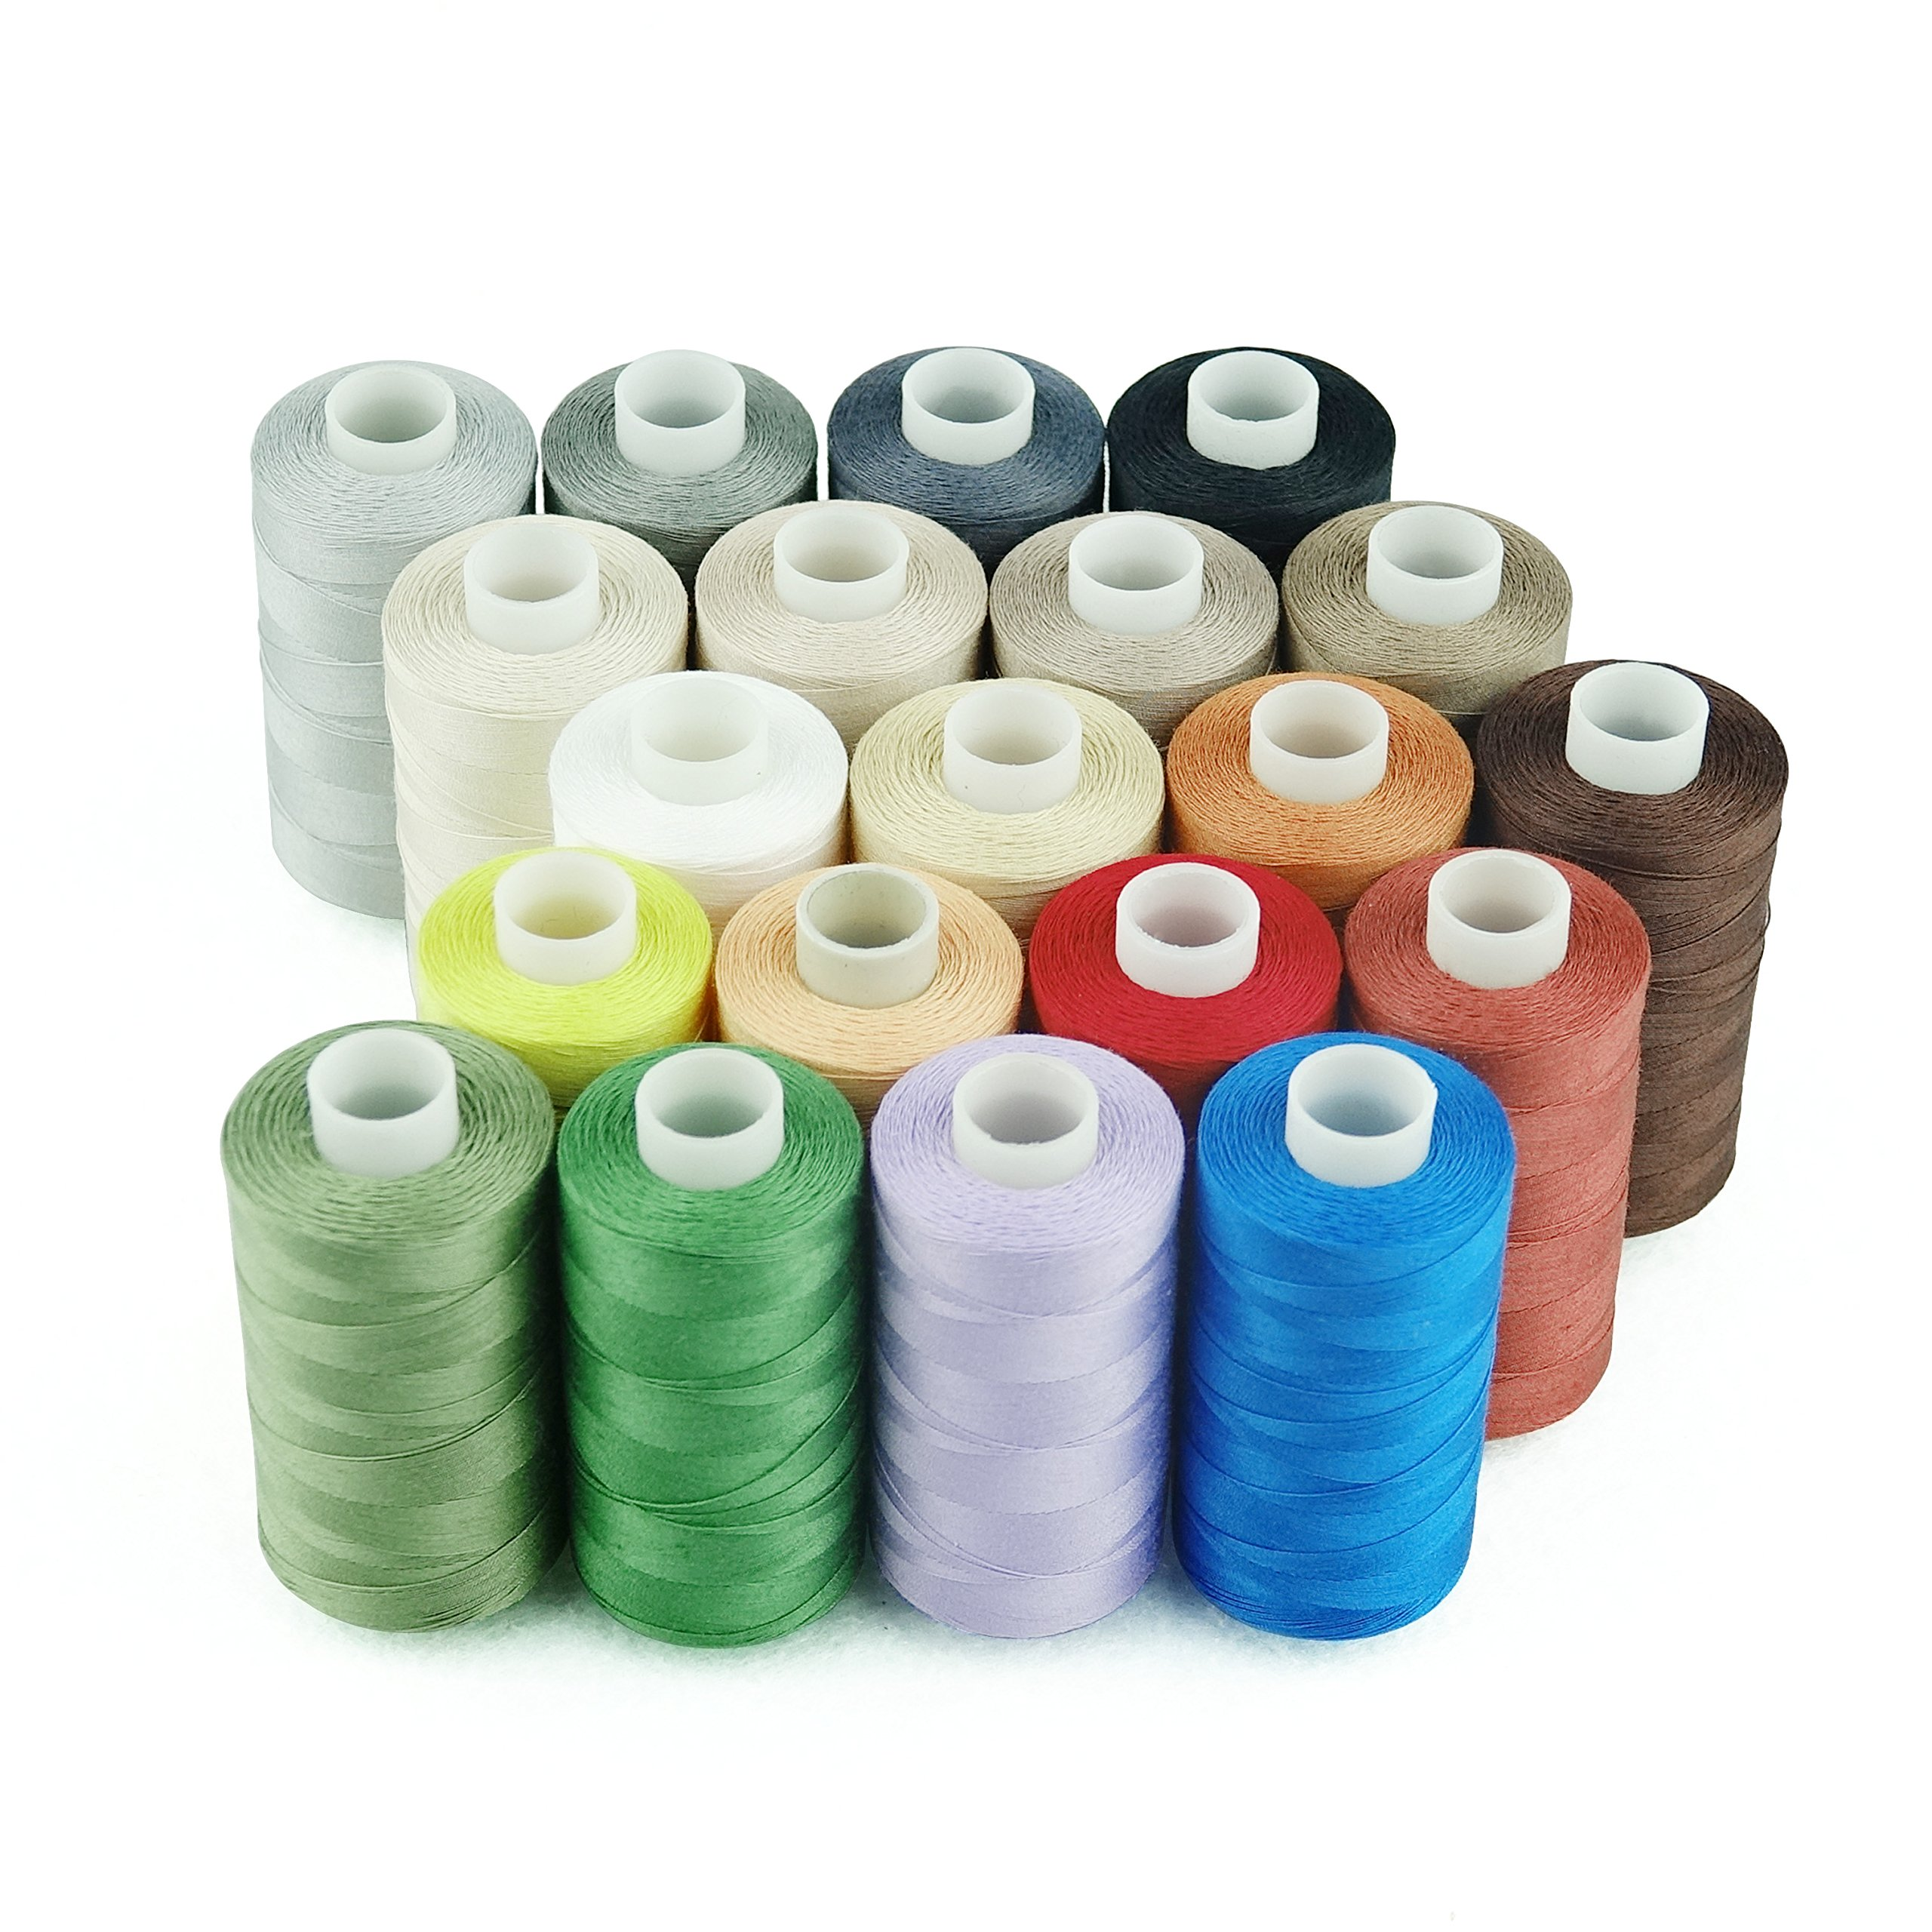 Simthread 20 Colors All Purposes Cotton Quilting Thread 50s/3 Thread for Piecing Sewing etc - 550 Yards Each(20 Colors) by Simthread